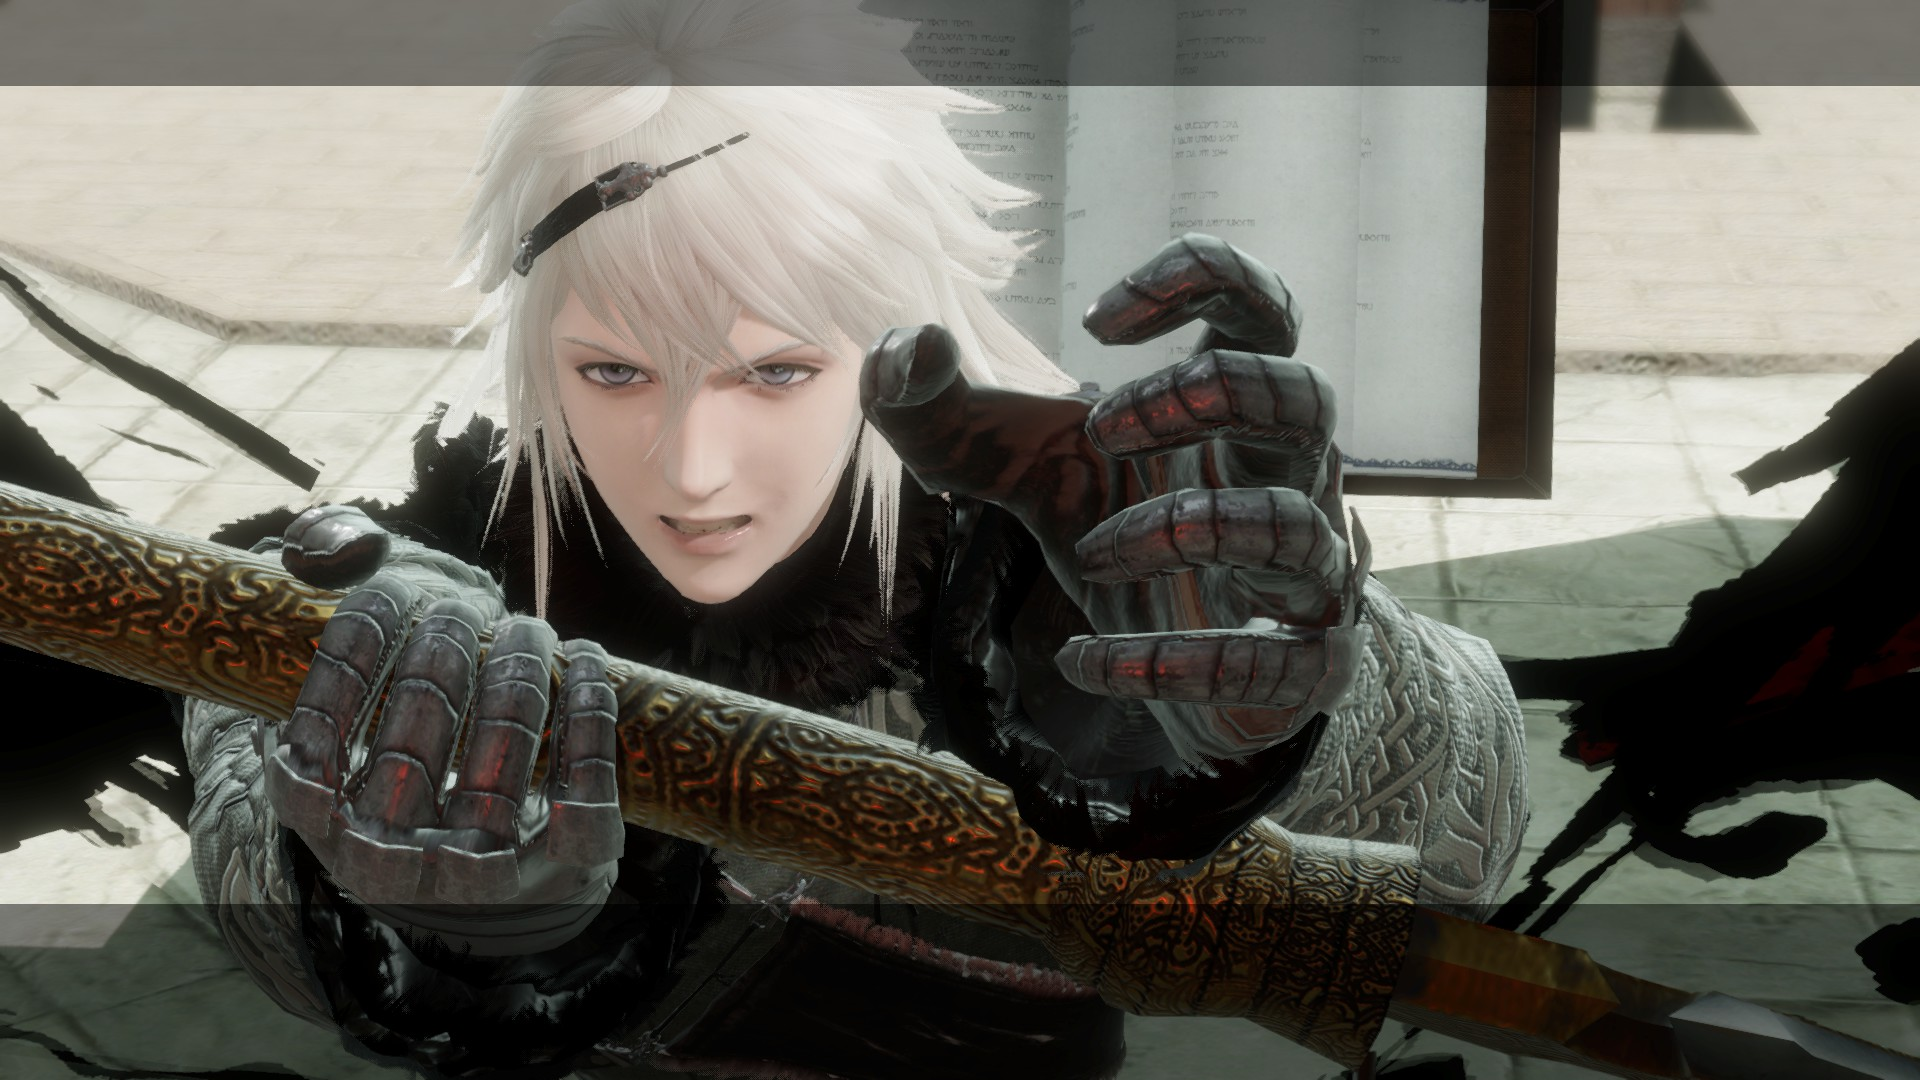 How to get pink moonflower seeds in Nier replicant, everything you need to know!